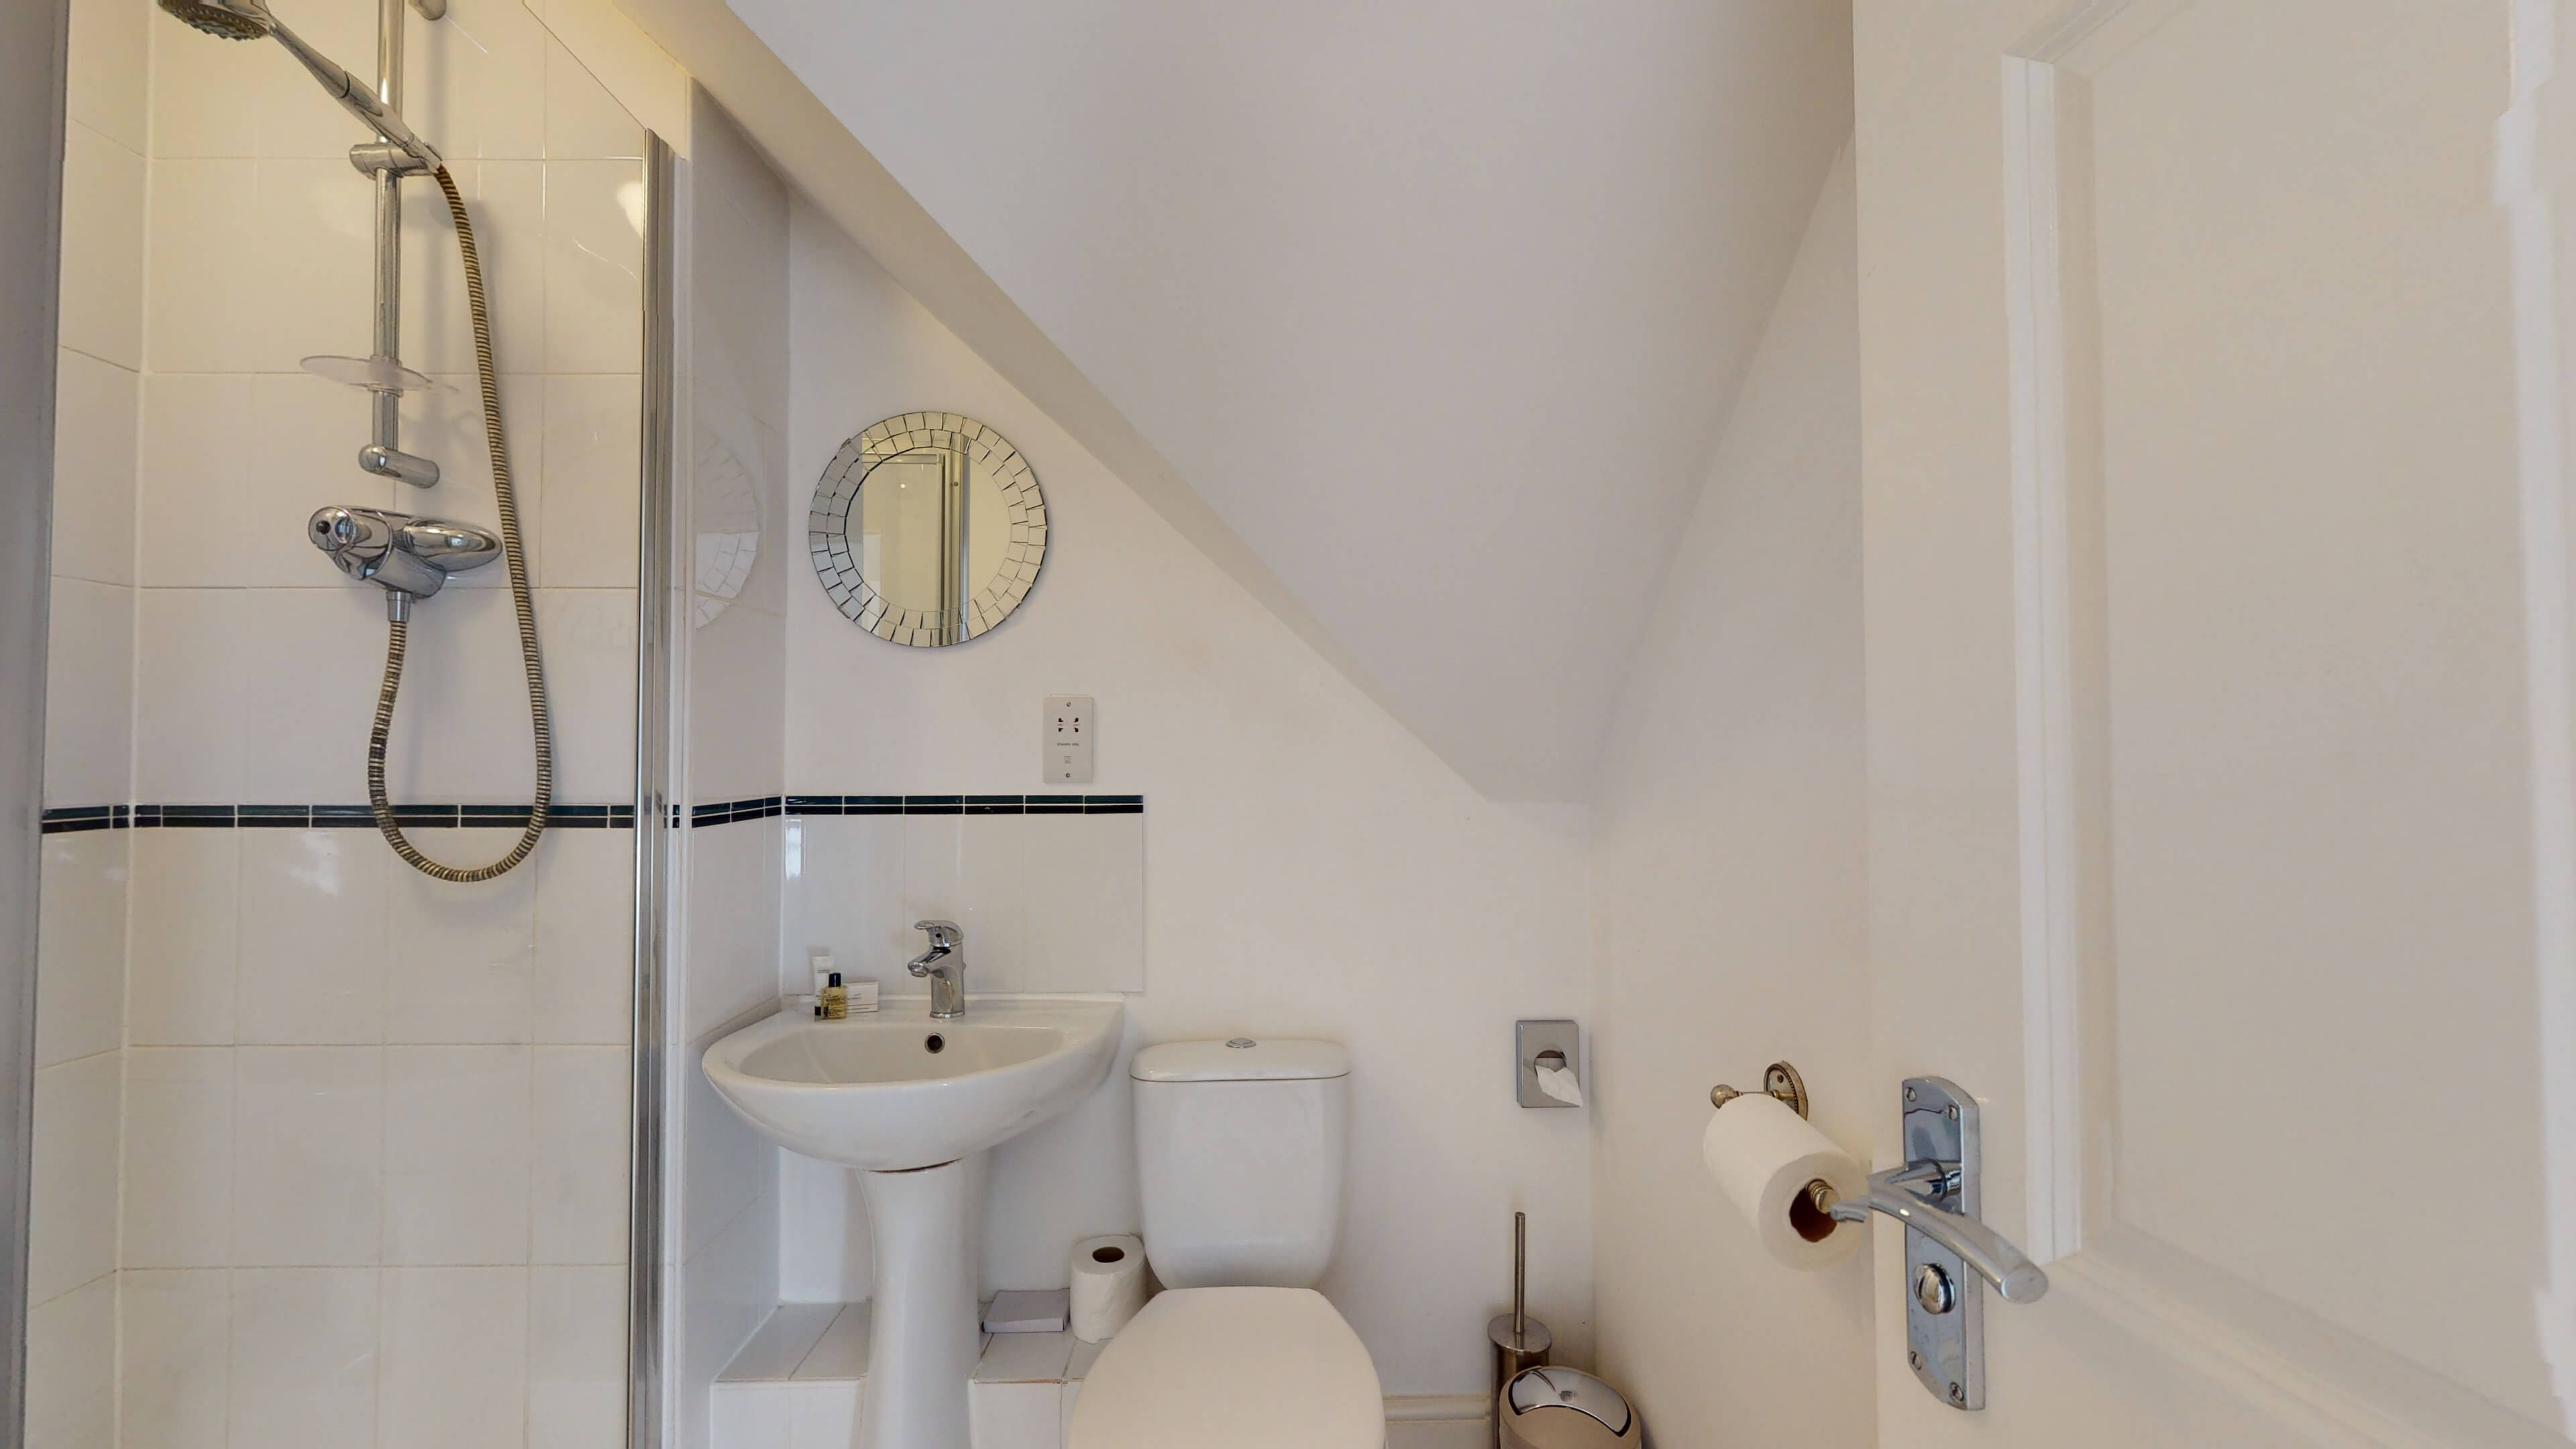 The Churchill Suite Furnished Oxford Apartment Churchill Suite Oxford Furnished Apartment18